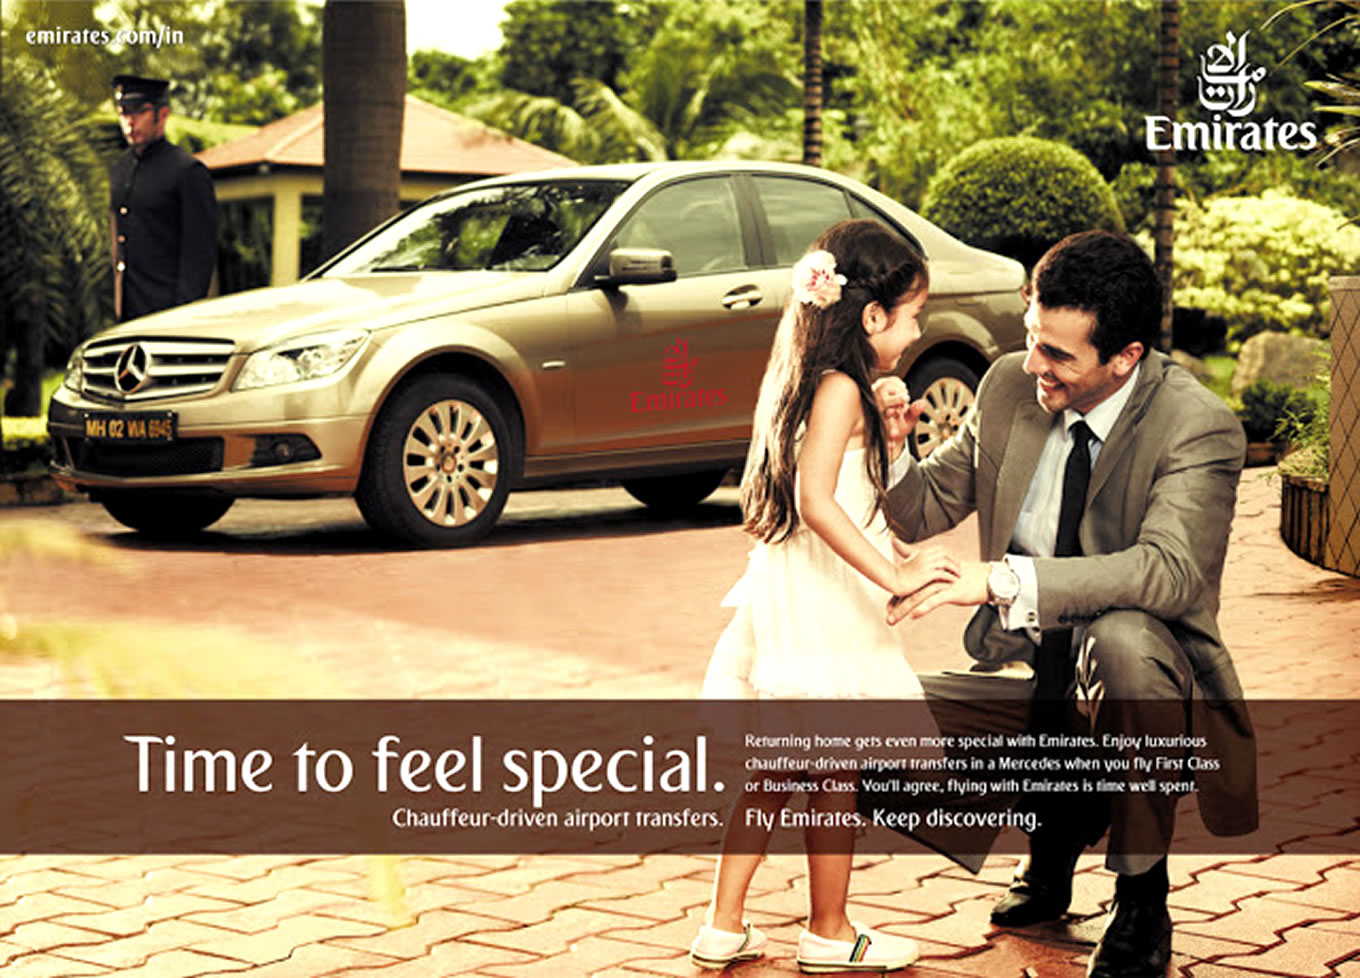 Special Time Print Advertising, Keep Discovering Marketing Campaign by Emirates